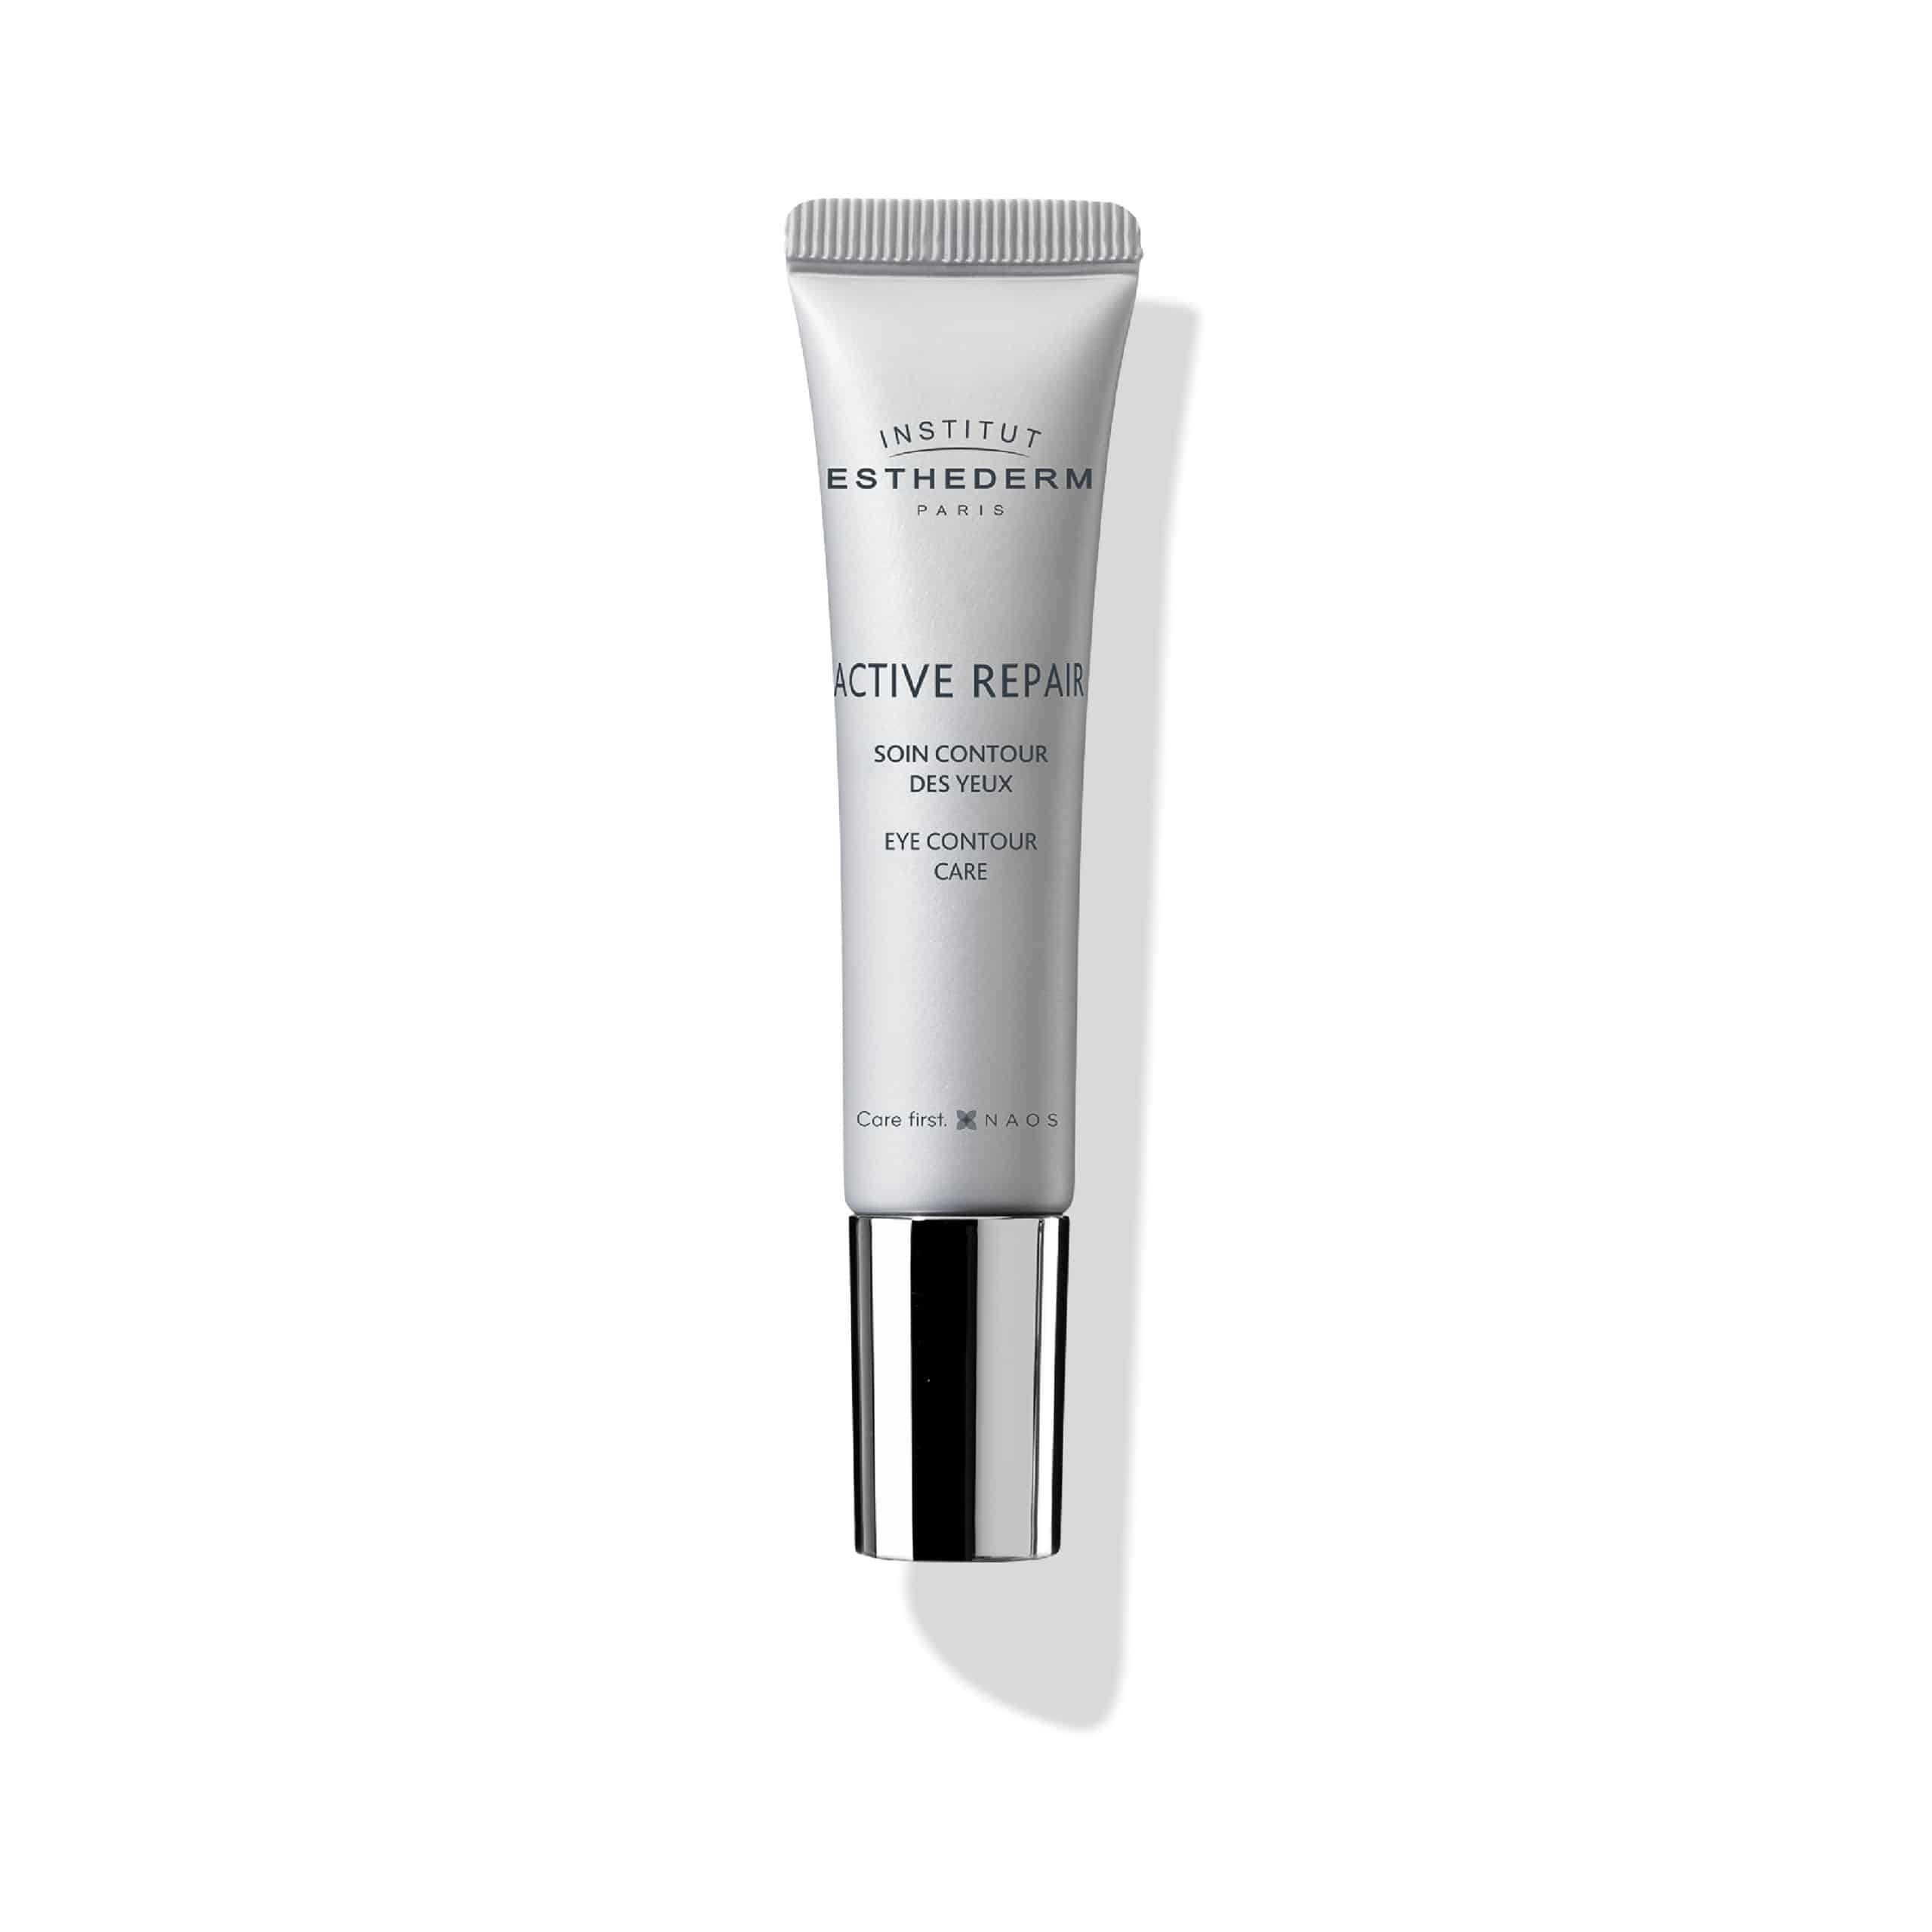 ESTHEDERM product photo, Active Repair Eye Contour Care 15ml, decongesting, dark circles and puffiness, all skin types